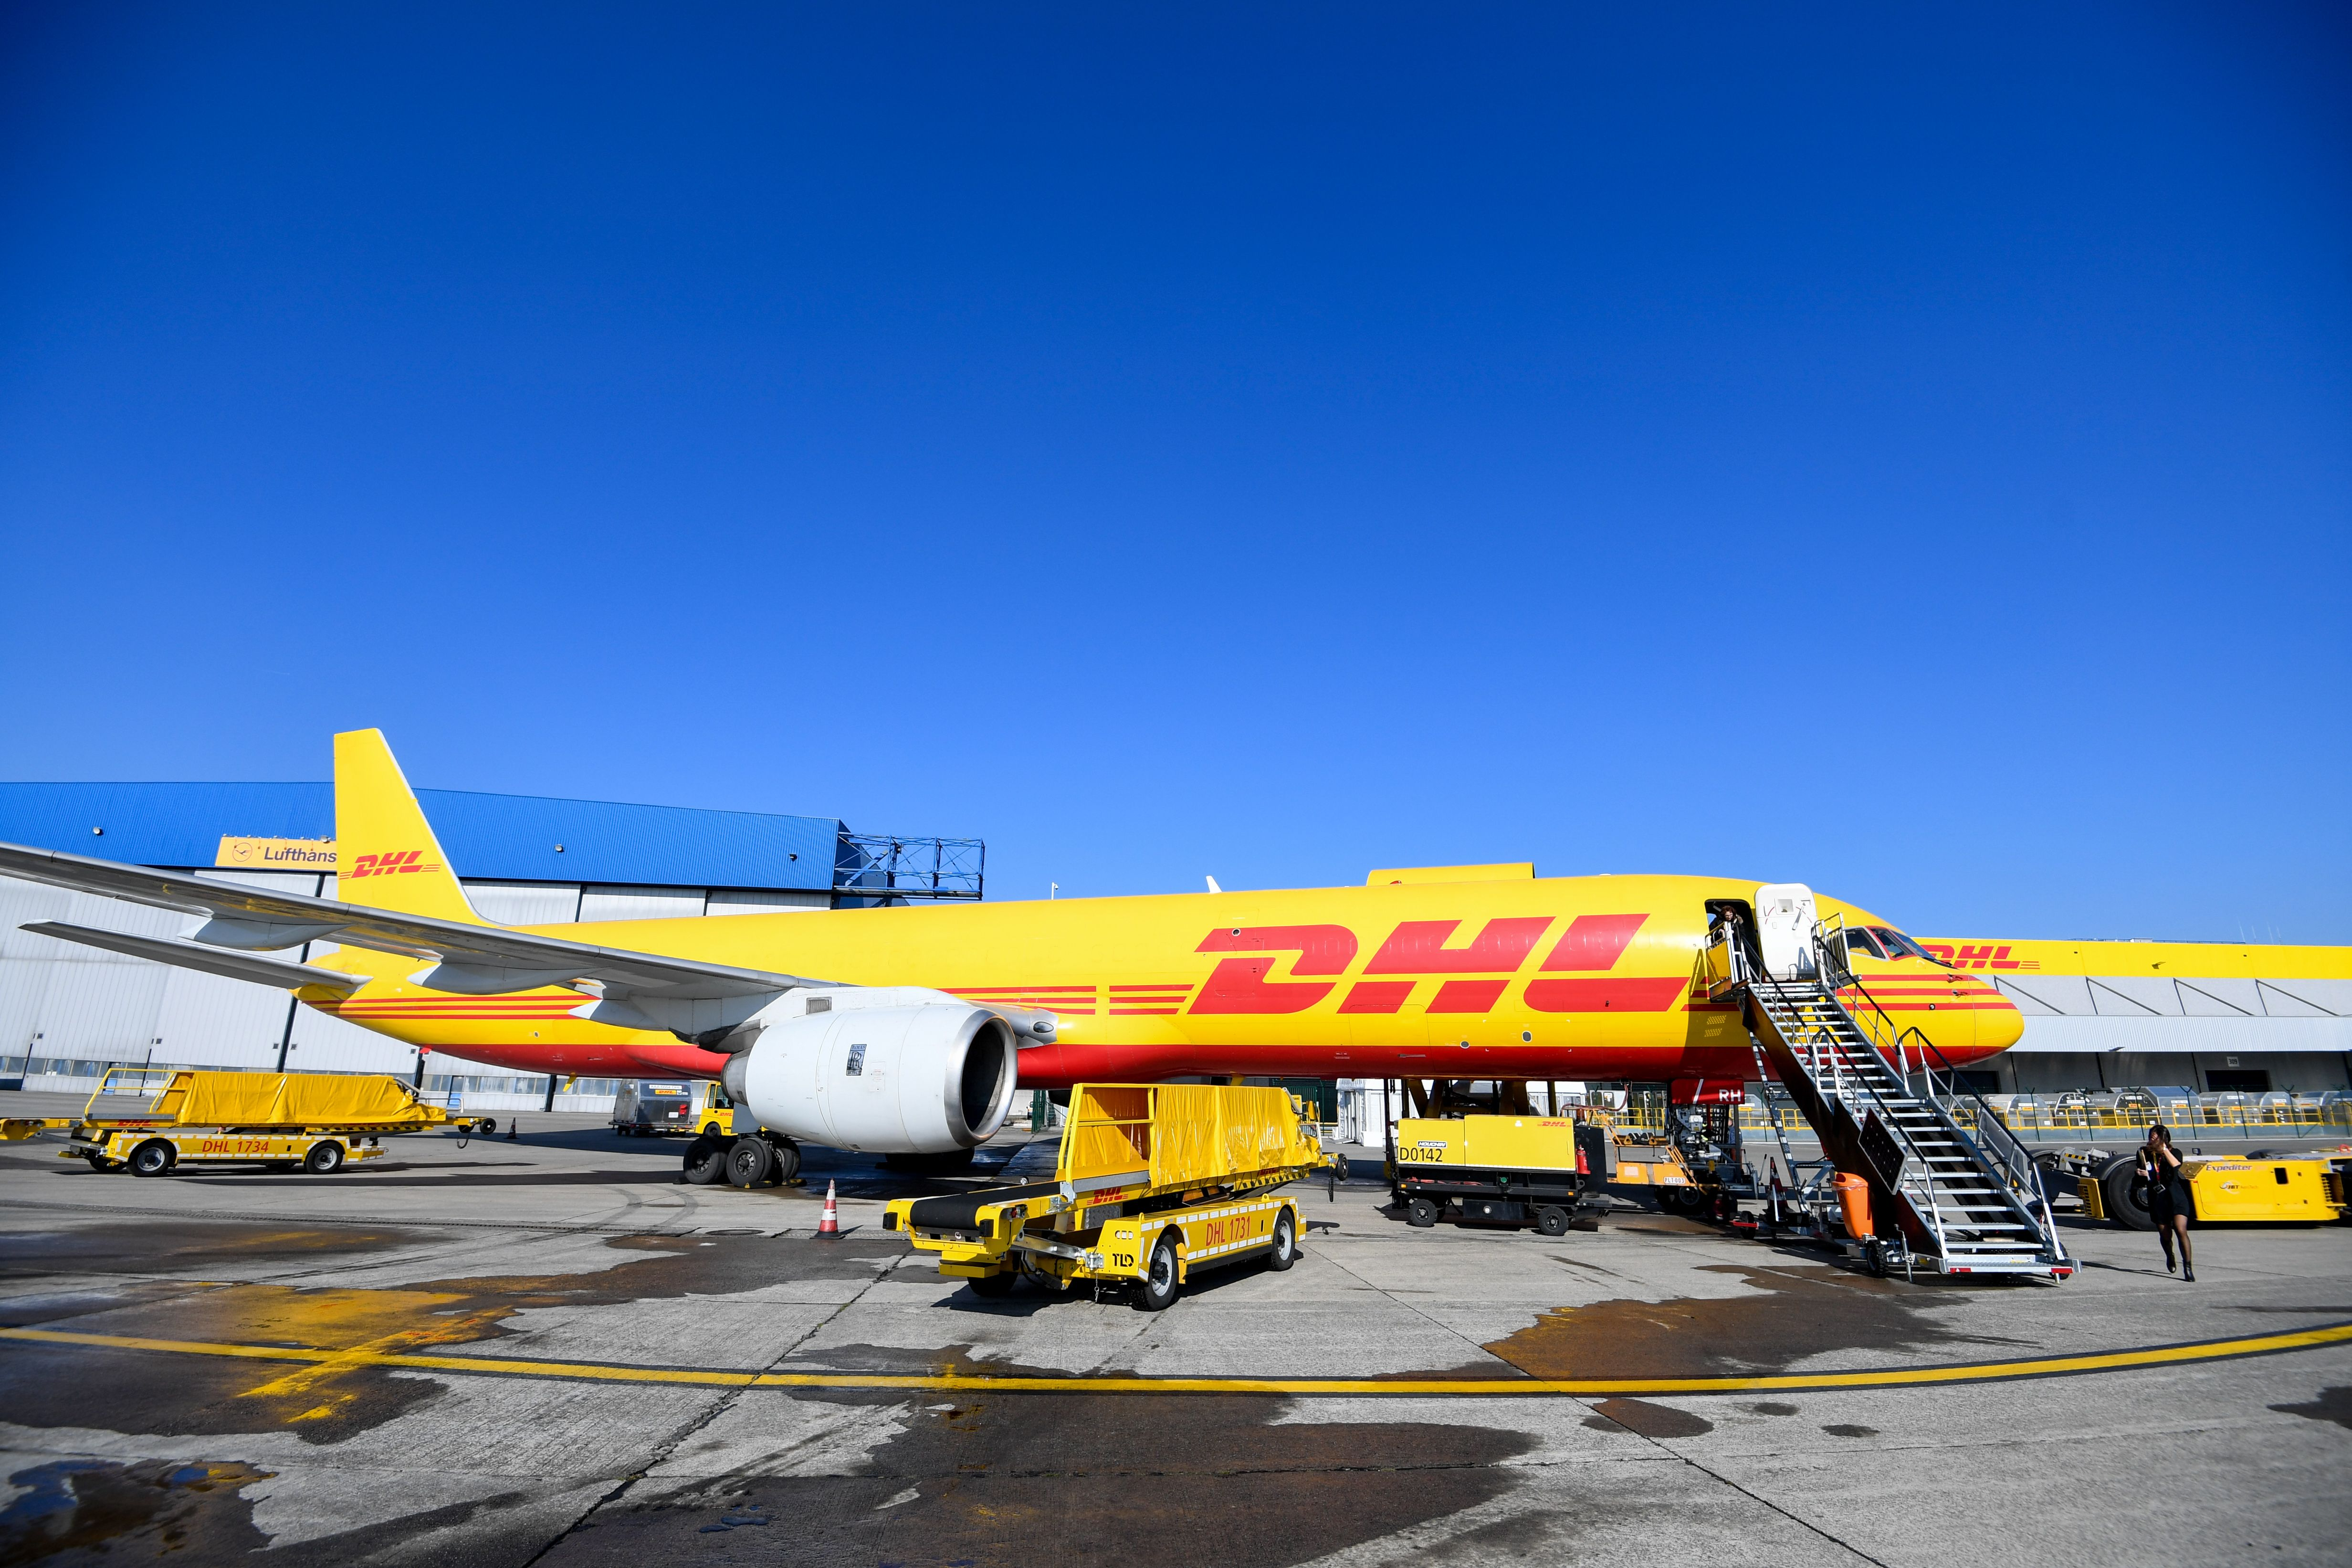 DHL hubNew Brussels hub of DHL opening, Steenokkerzeel, Belgium - 22 Feb 2018 PC with CEO of DHL Express Ken Allen and CEO of Brussels Airport Arnaud Feist following the official opening of the new Brussels hub of DHL. This new and ultramodern hub, an investment of 114 million euros, means a considerable reinforcement for the European network of DHL, ensures the creation of 200 new jobs and triples the capacity of DHL Brussels thanks to the modernization of the sorting techniques used.